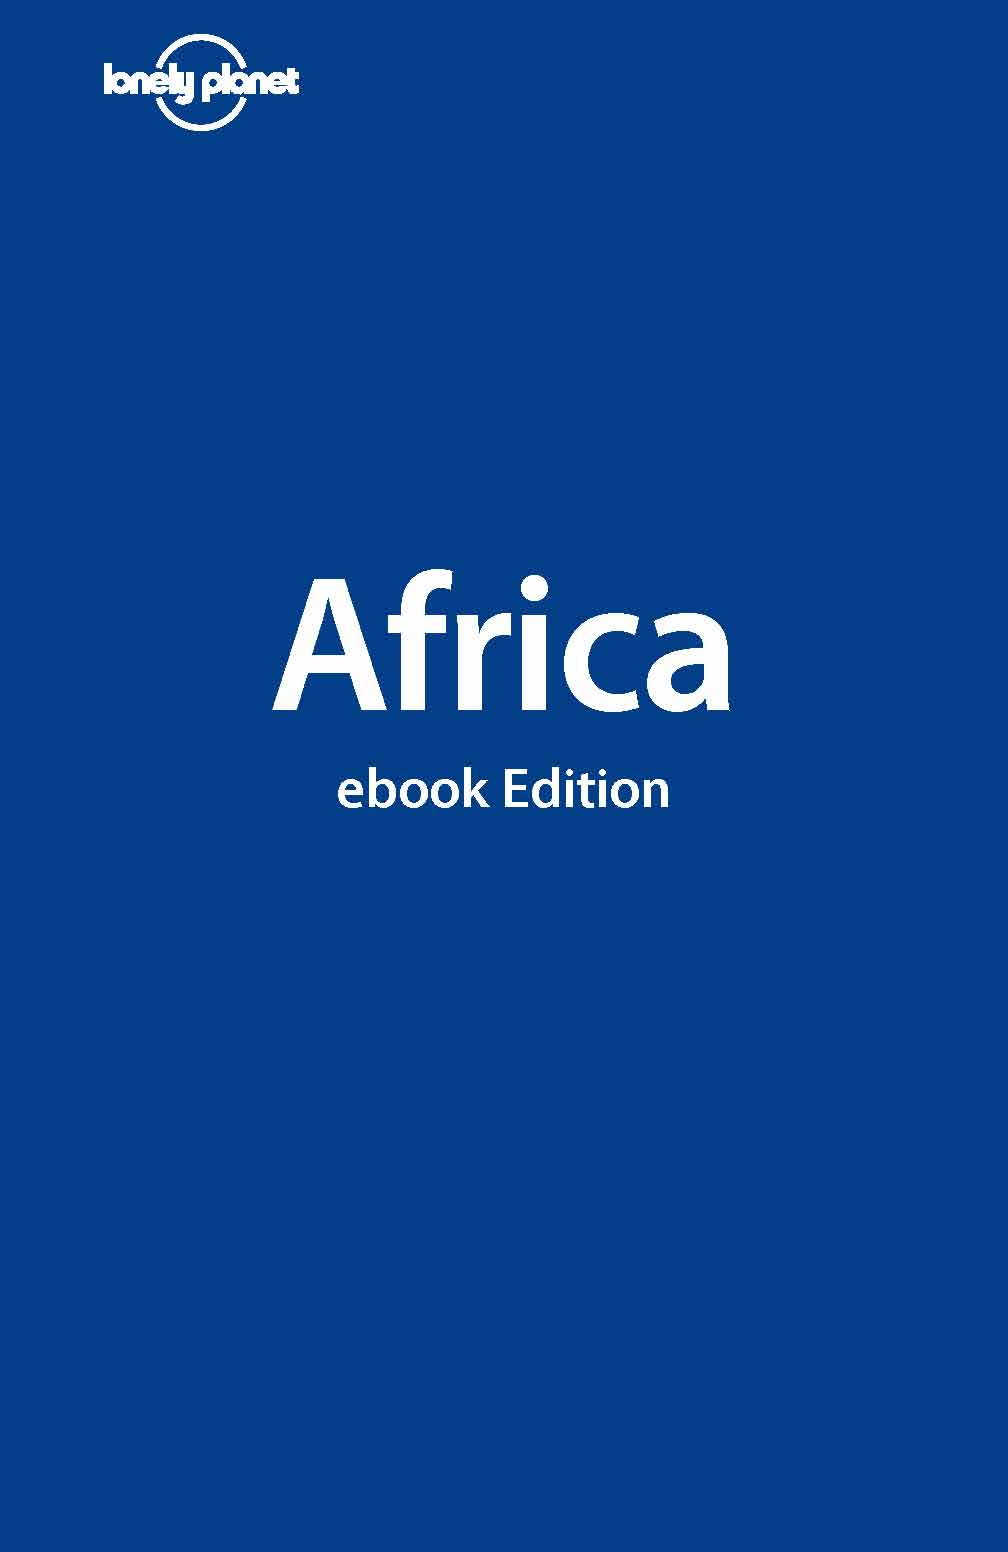 Lonely Planet Africa By: Anthony Ham,Jean-Bernard Carillet,Kate Thomas,Katharina Lobeck Kane,Lonely Planet,Mary Fitzpatrick,Matthew D Firestone,Paul Clammer,Stuart Butler,Tim Bewer